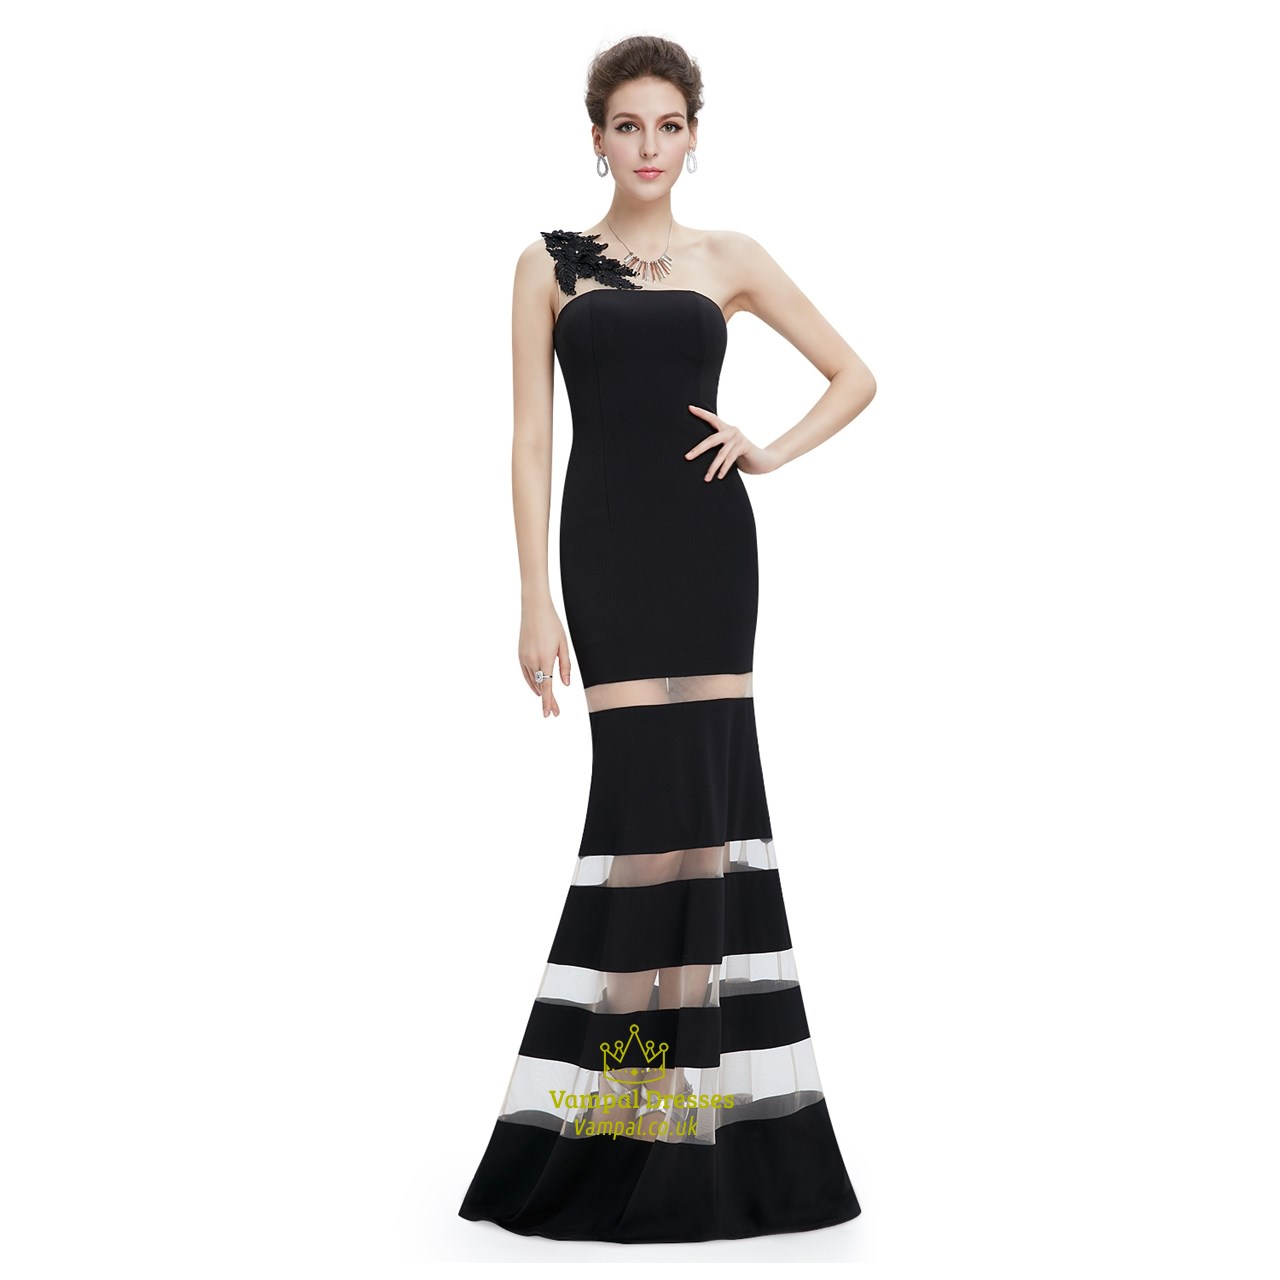 d499e99a4 Mermaid Dresses Uk Next Day Delivery